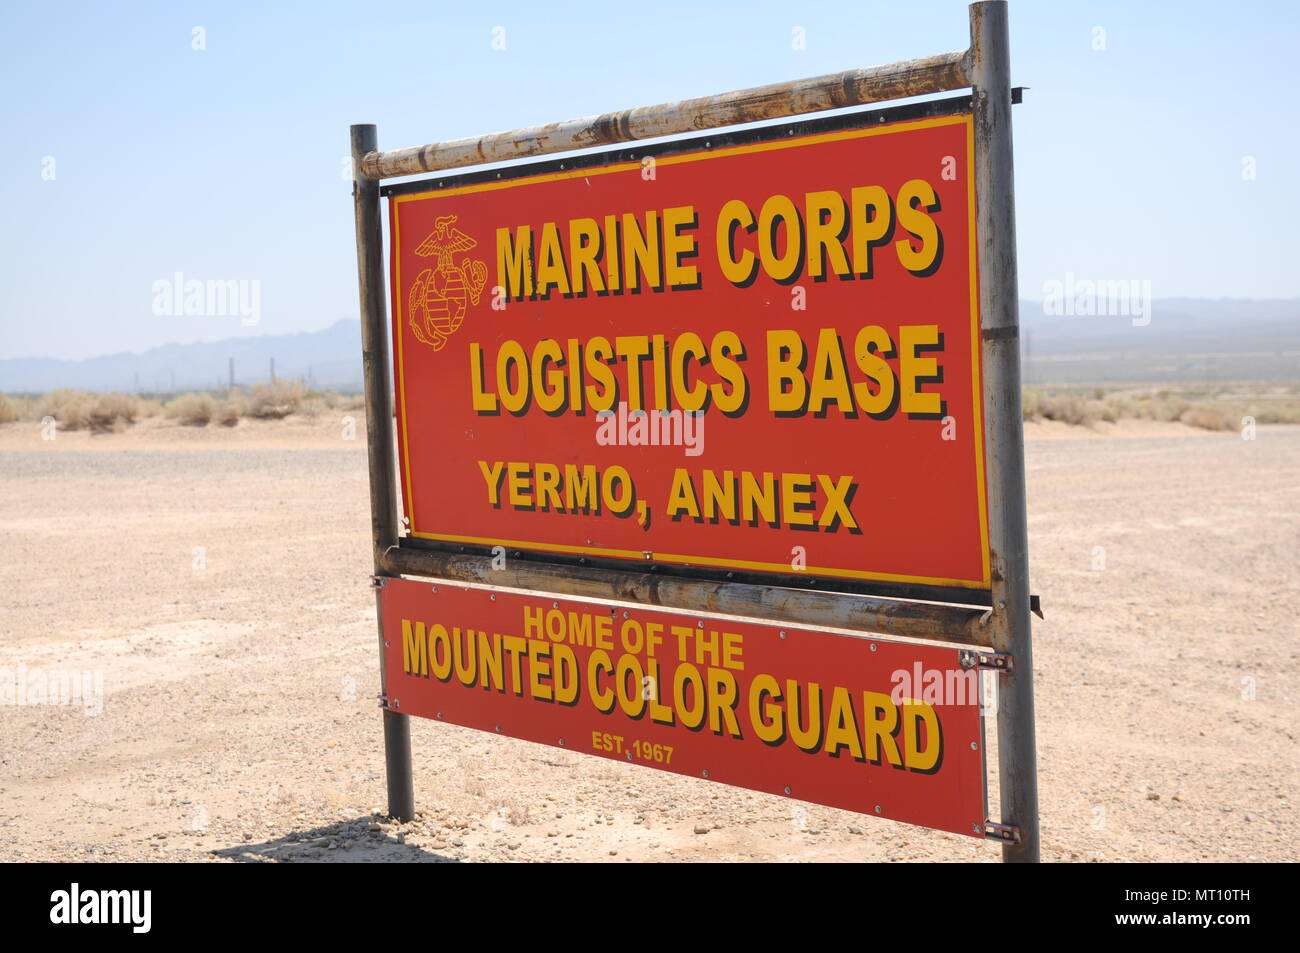 Entrance into Marine Corps Logistics Base where sections of MCS arrived by rail for pickup and transport by the 250th TC. - Stock Image